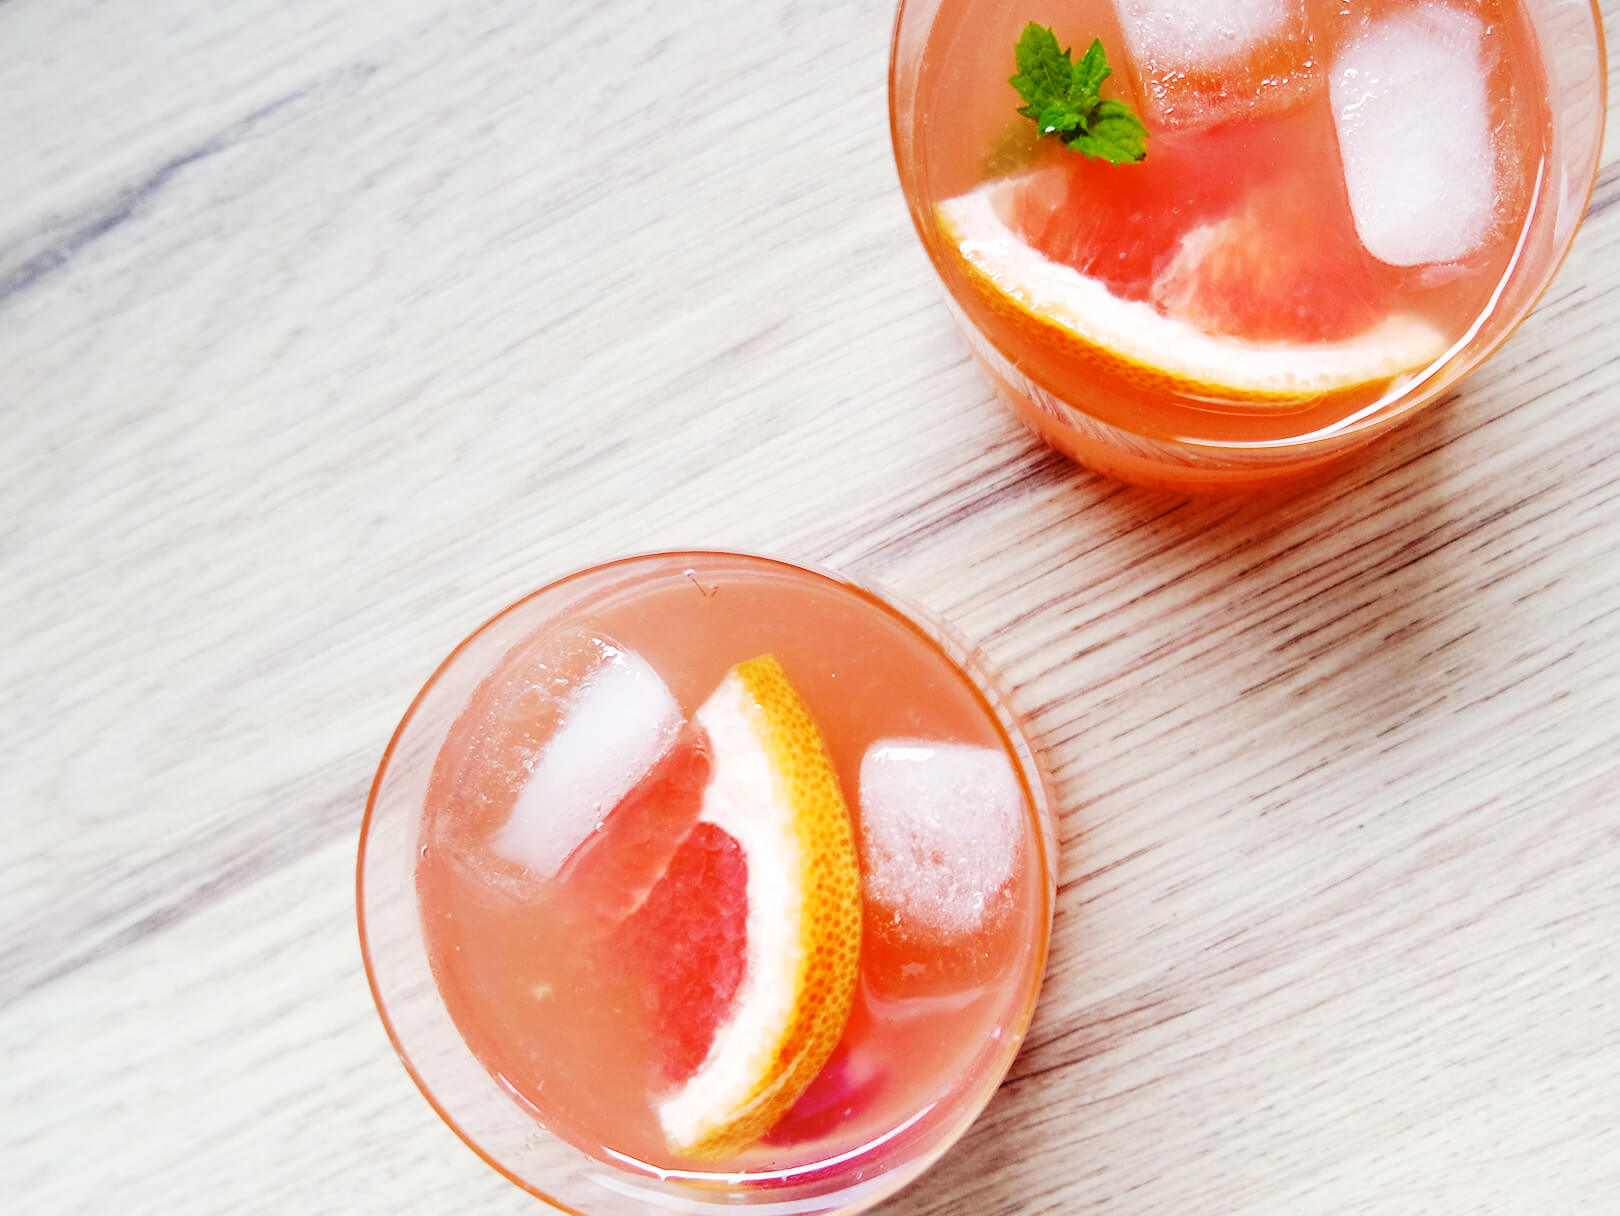 indian_goods_company_blog_inspiration_recipes_summery_citrus_grapefruit_orange_cardamom_lemonade_cooling_cooler_healthy_vegan_wholefoods